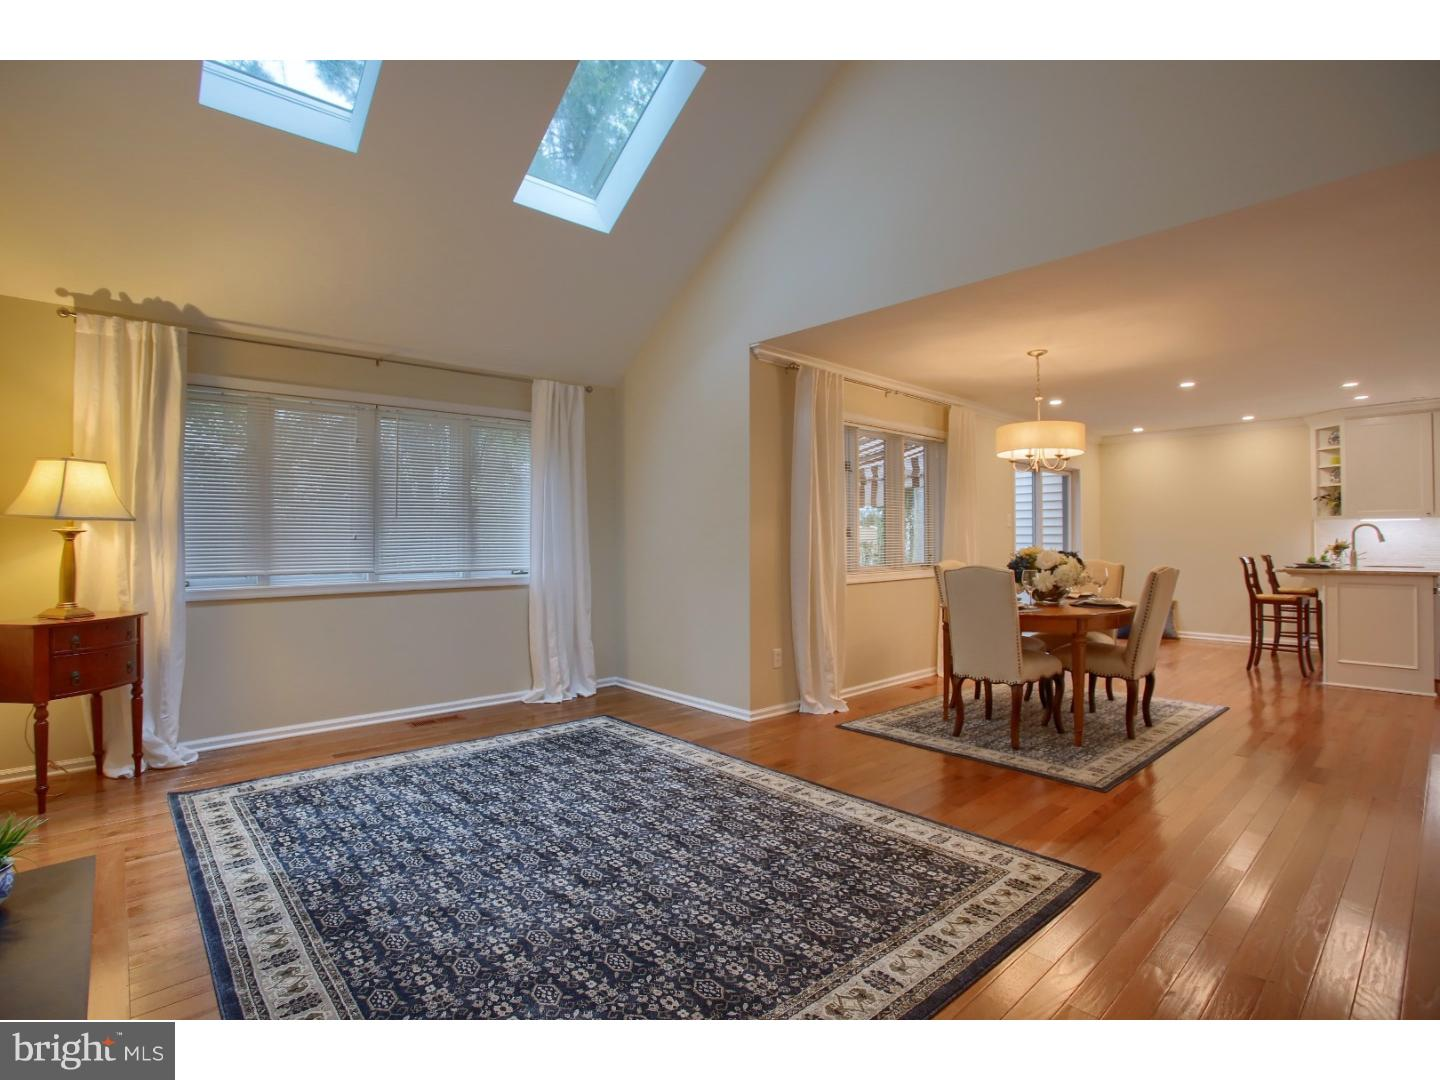 453 Eaton Way West Chester , PA 19380